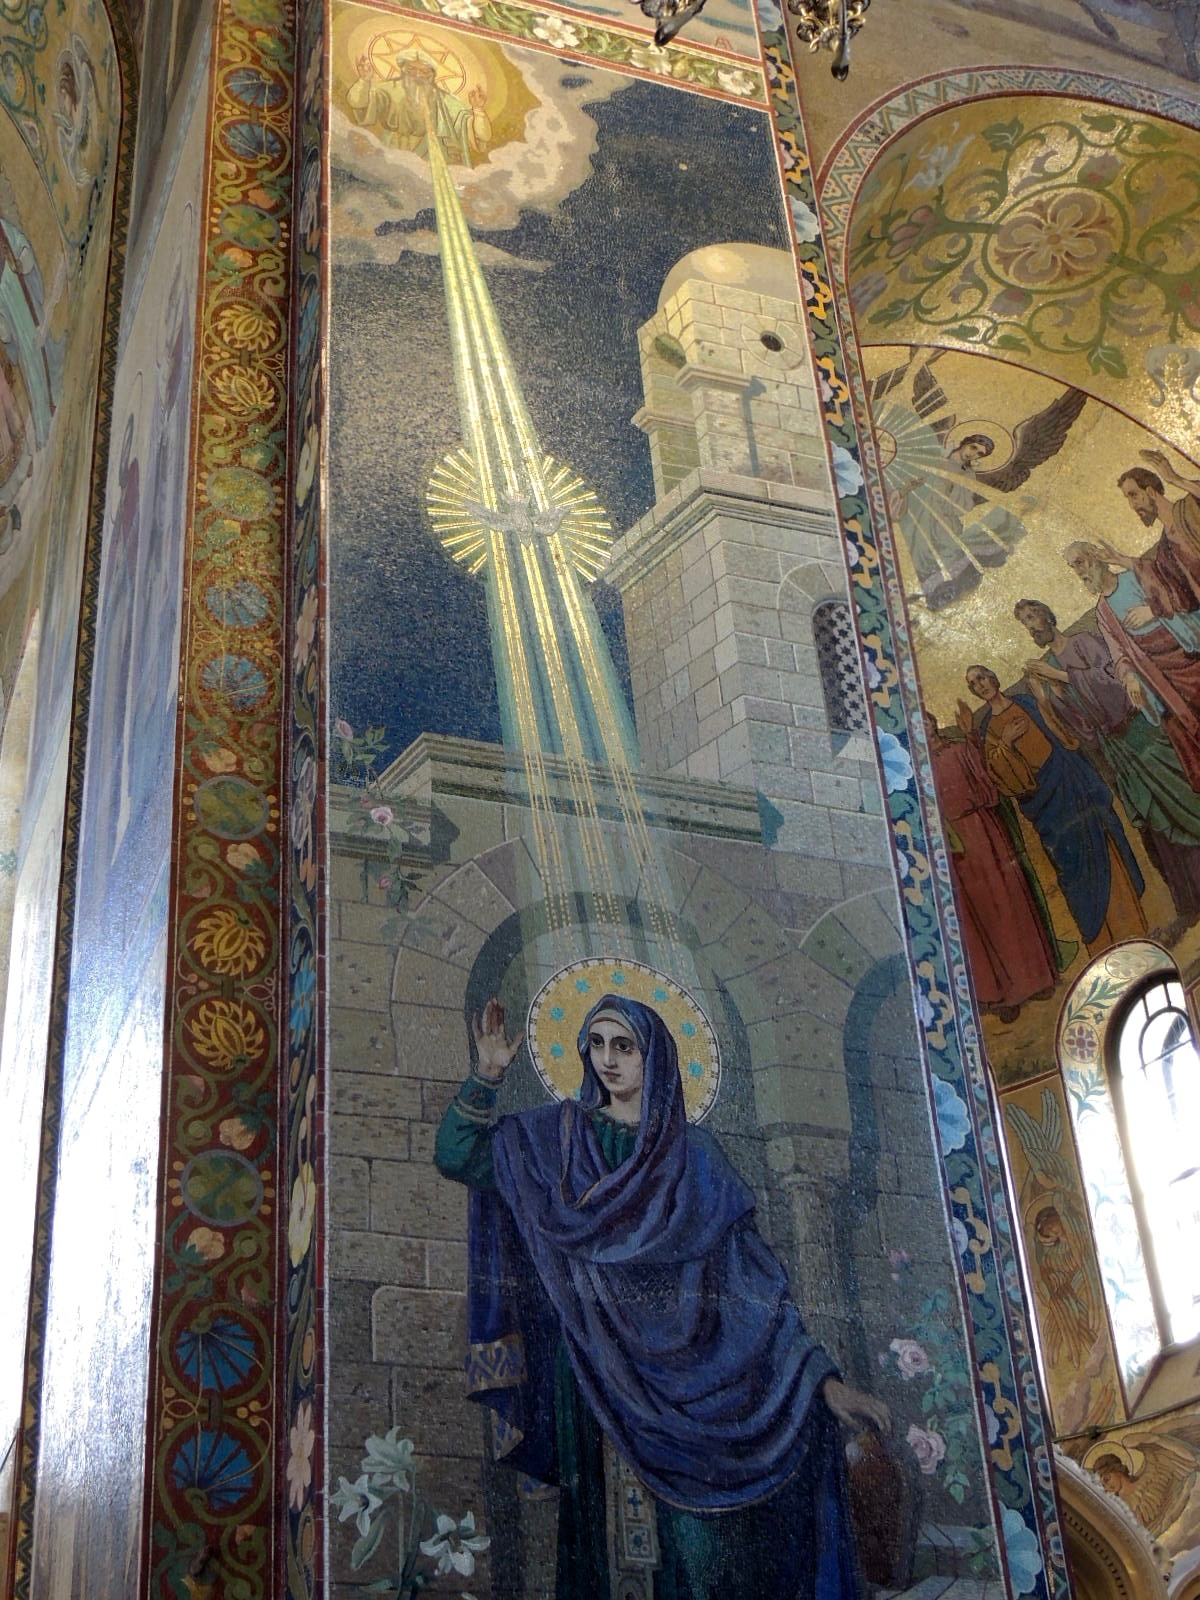 Another example of the mosaics inside the church.